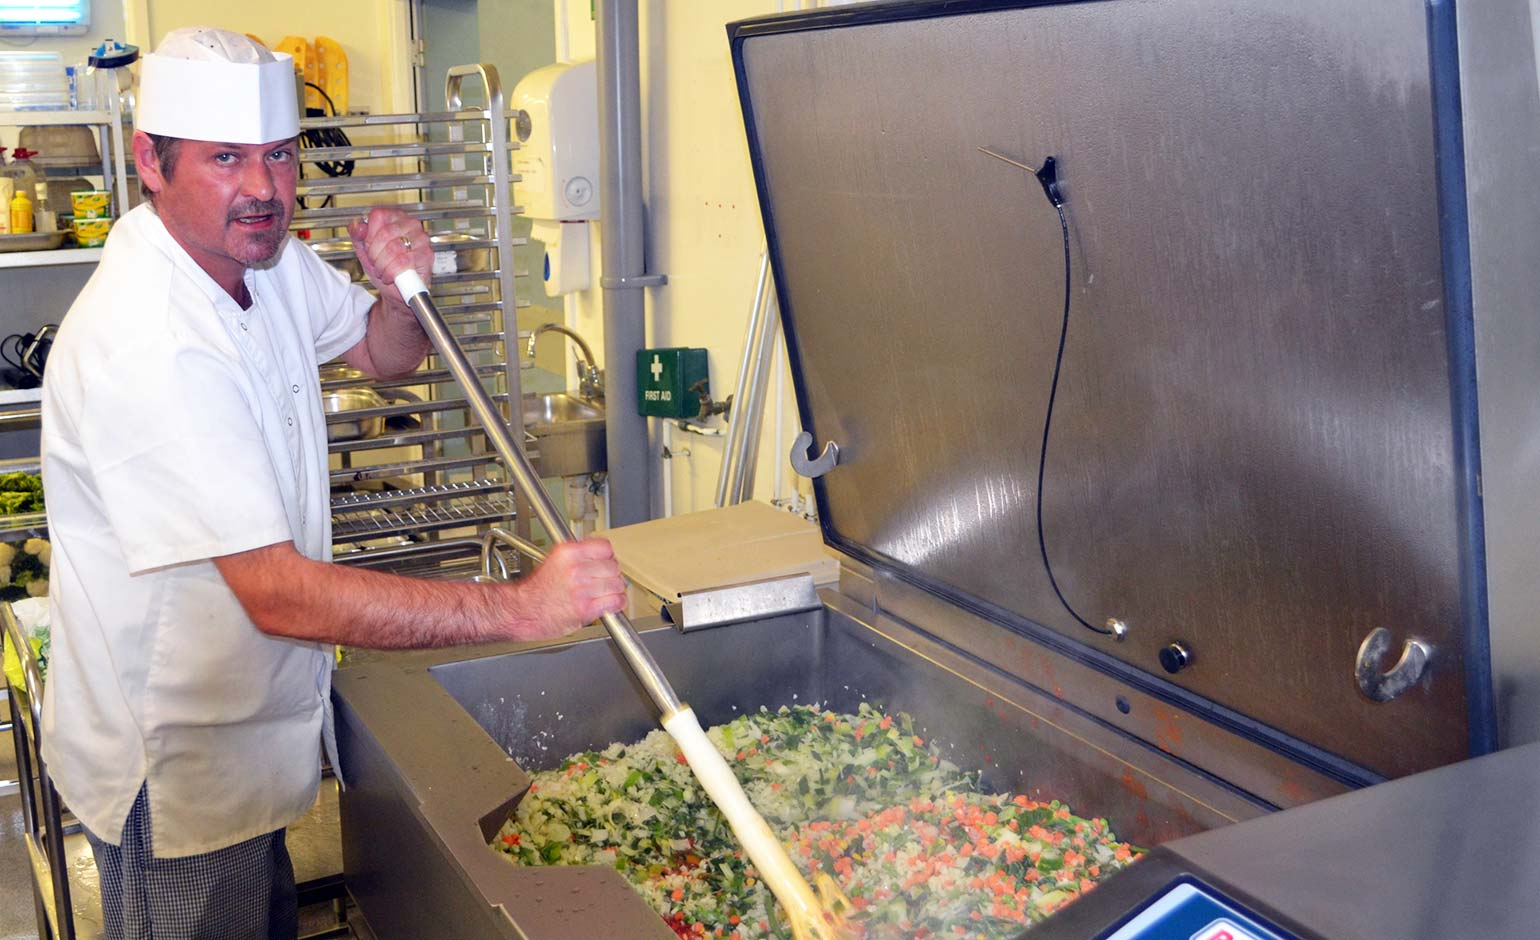 £100k investment in hospital kitchens helps reduce waste and energy use